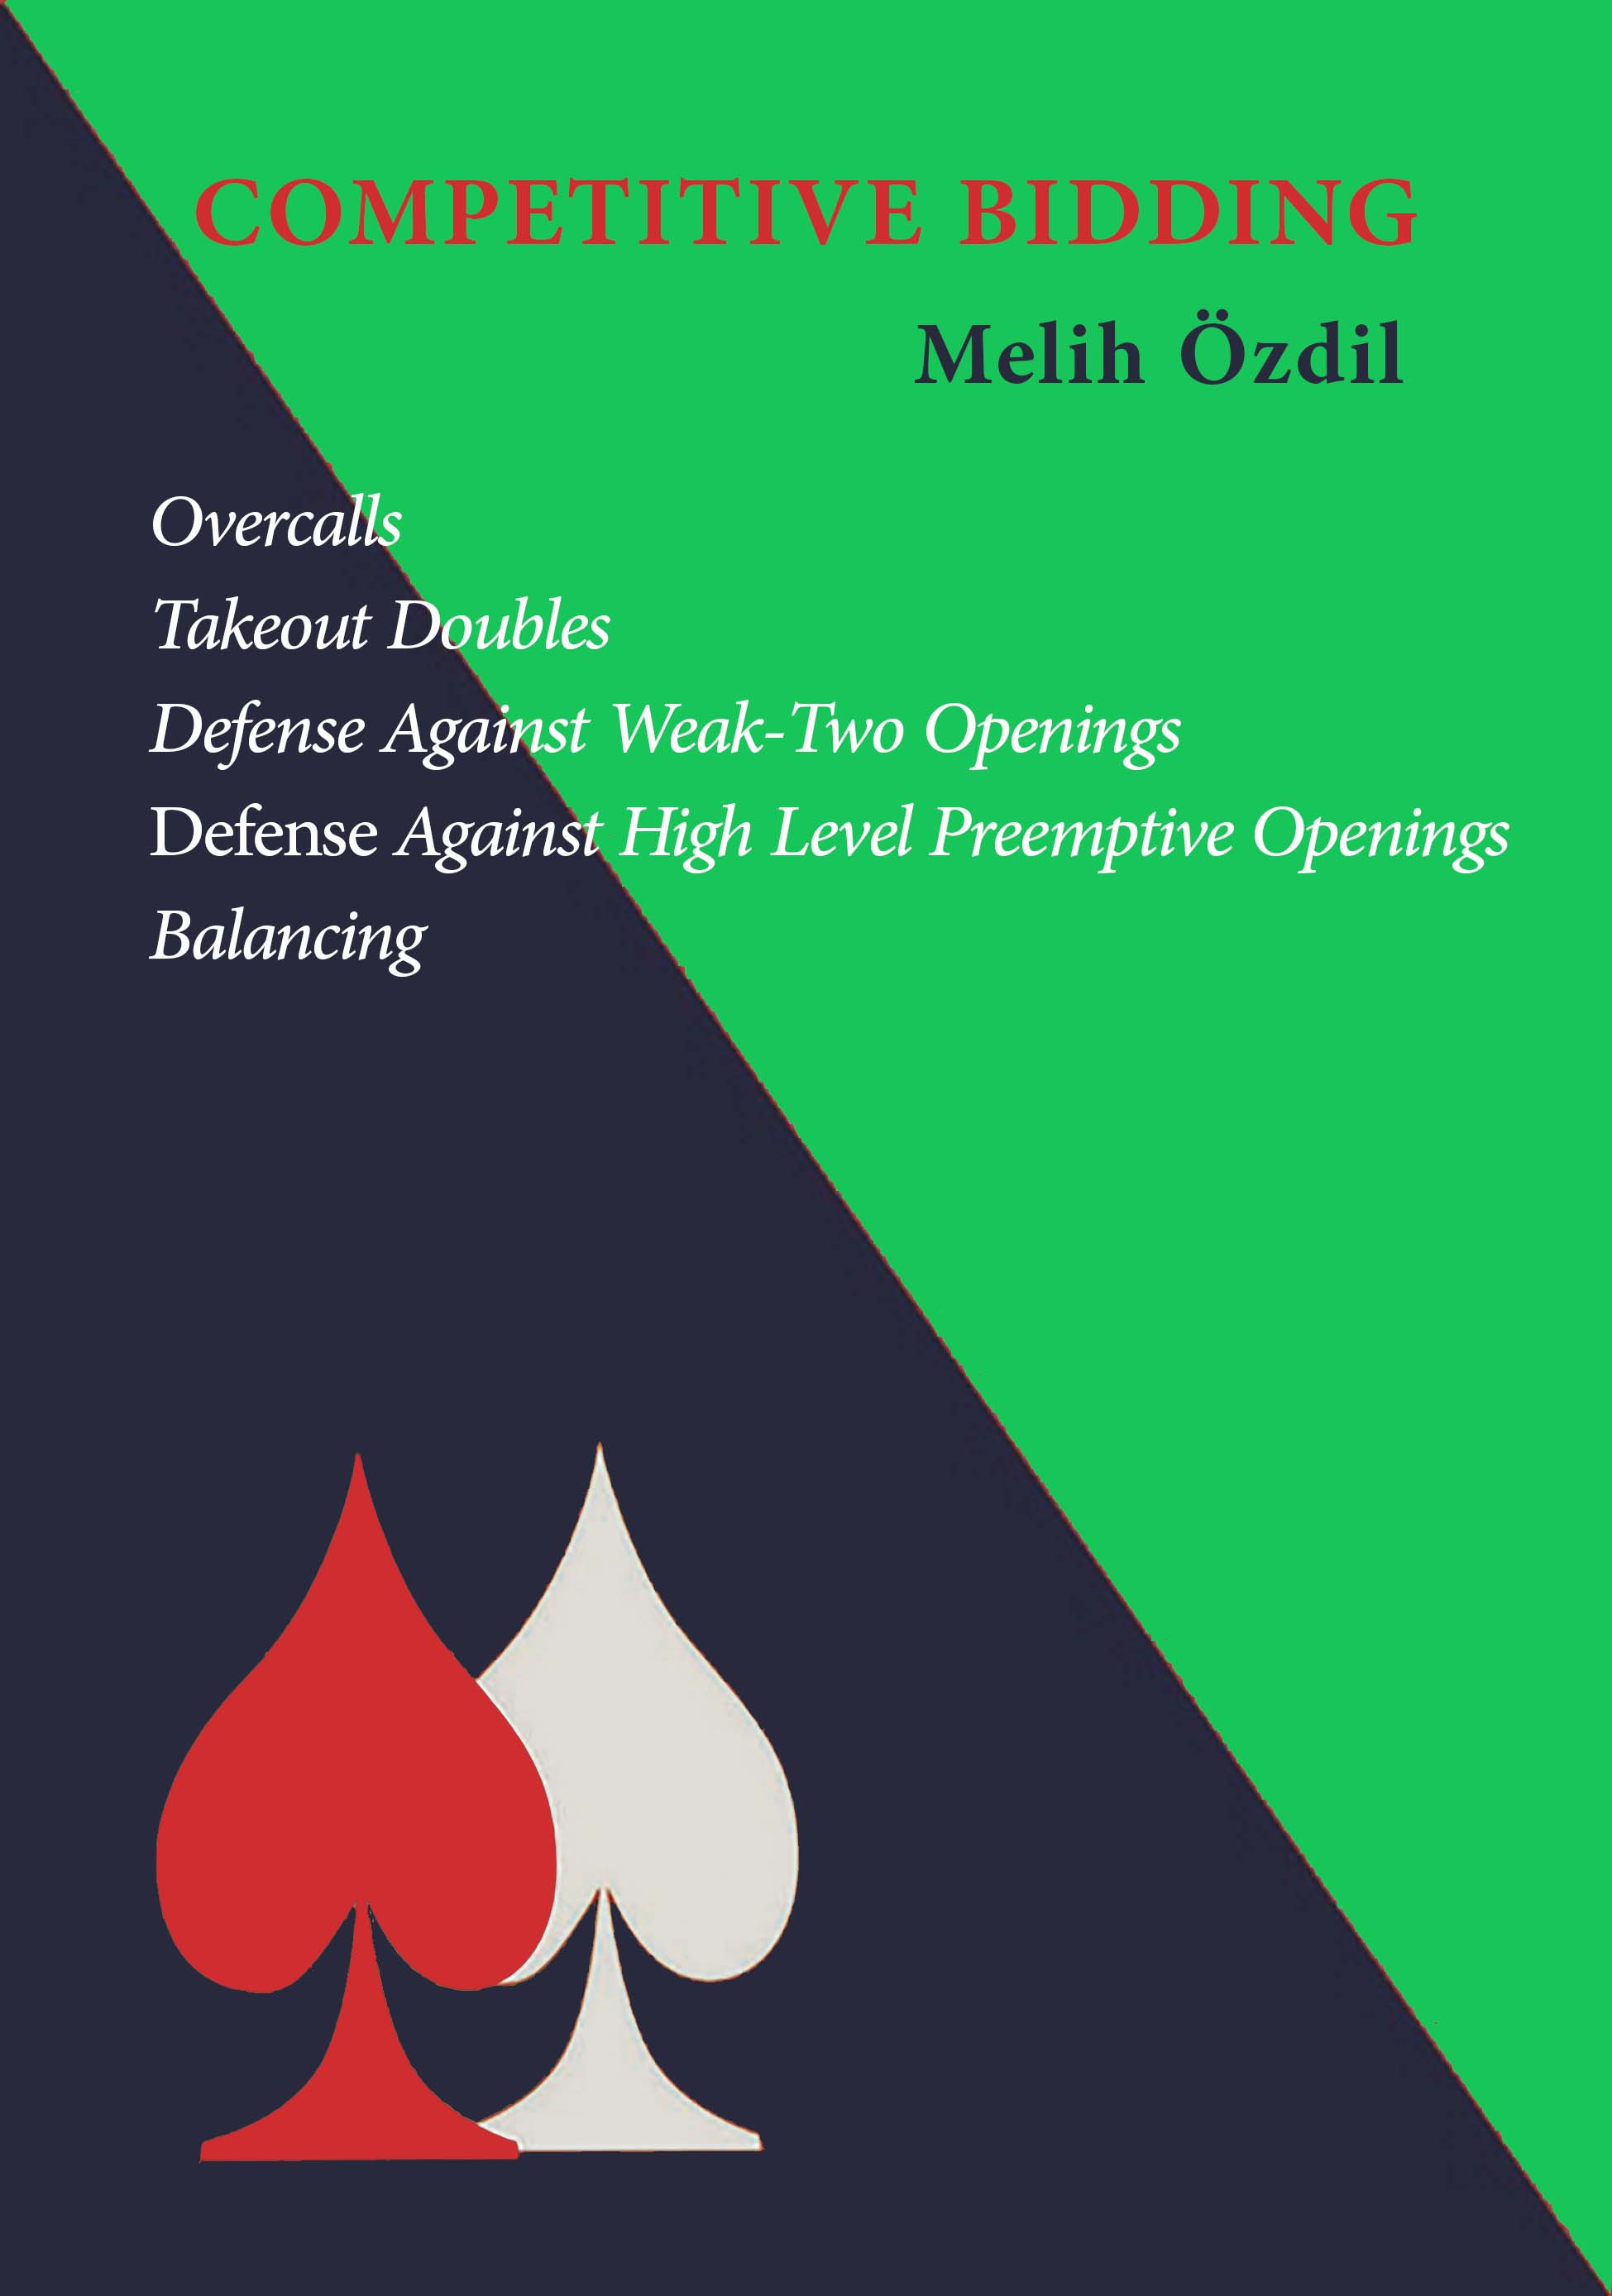 Competitive Bidding, an Ebook by Melih Ozdil